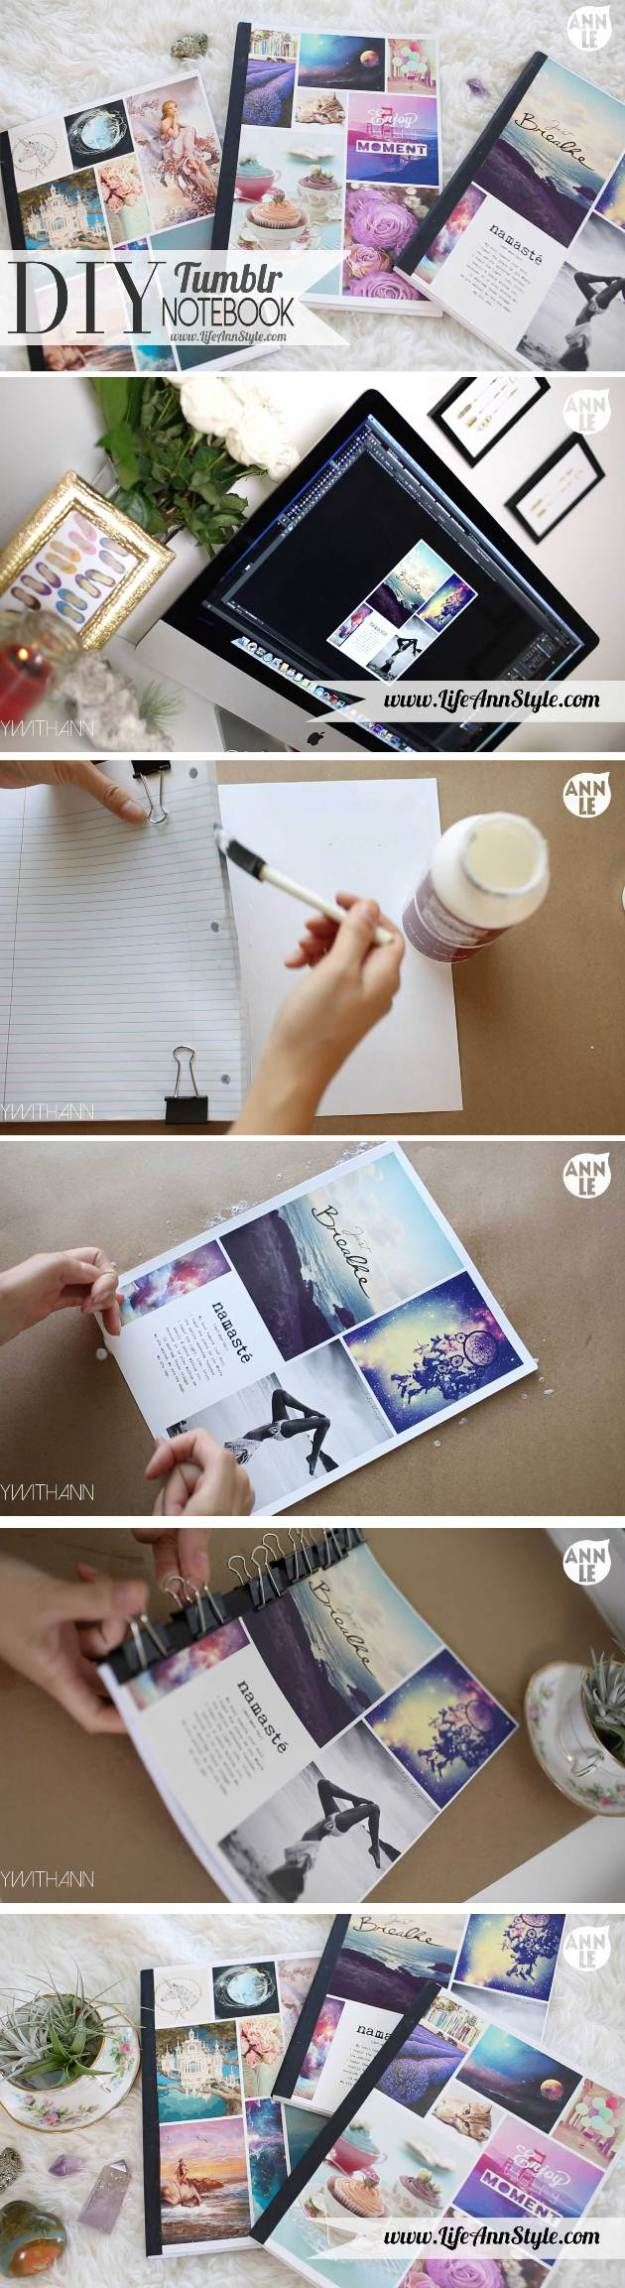 notebook covers tumblr